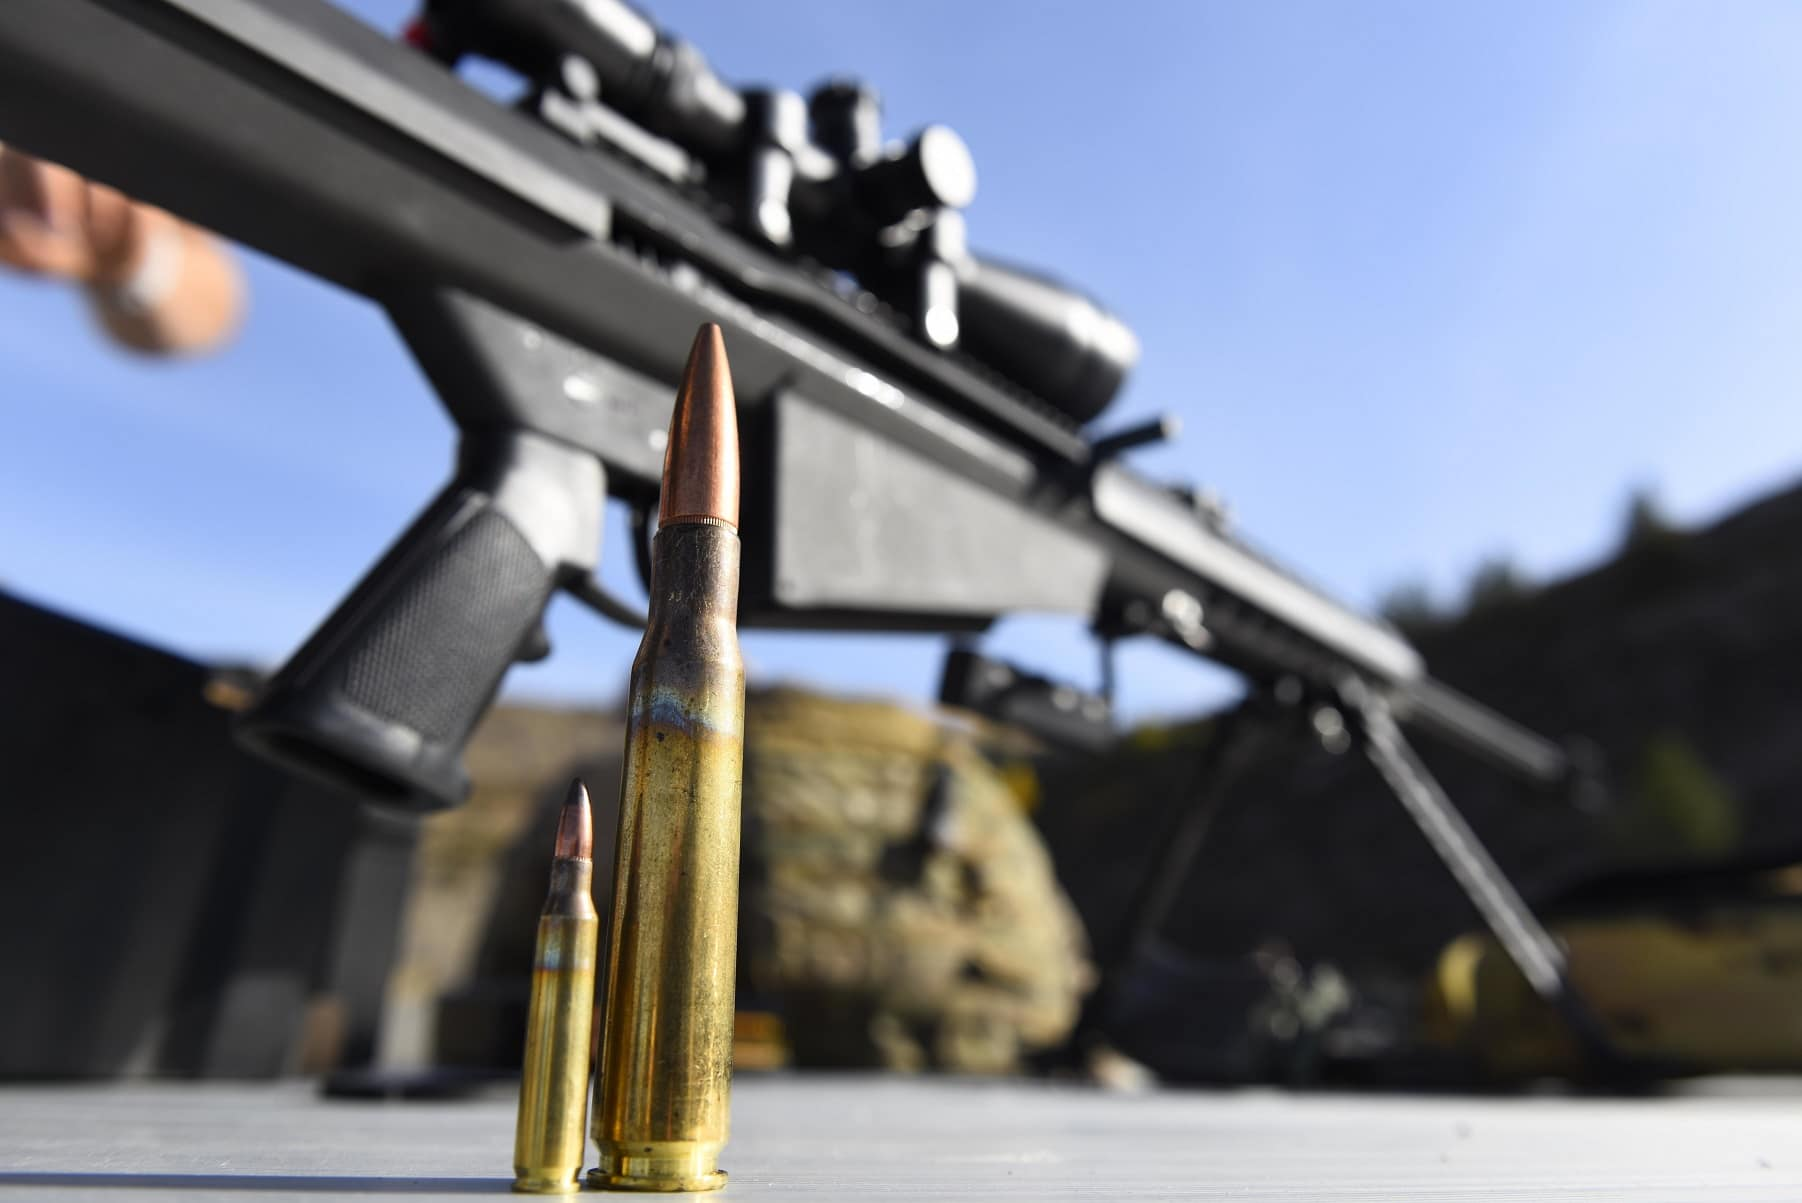 U.S. Army awards Olin Corp. $85M for small-caliber ammunition